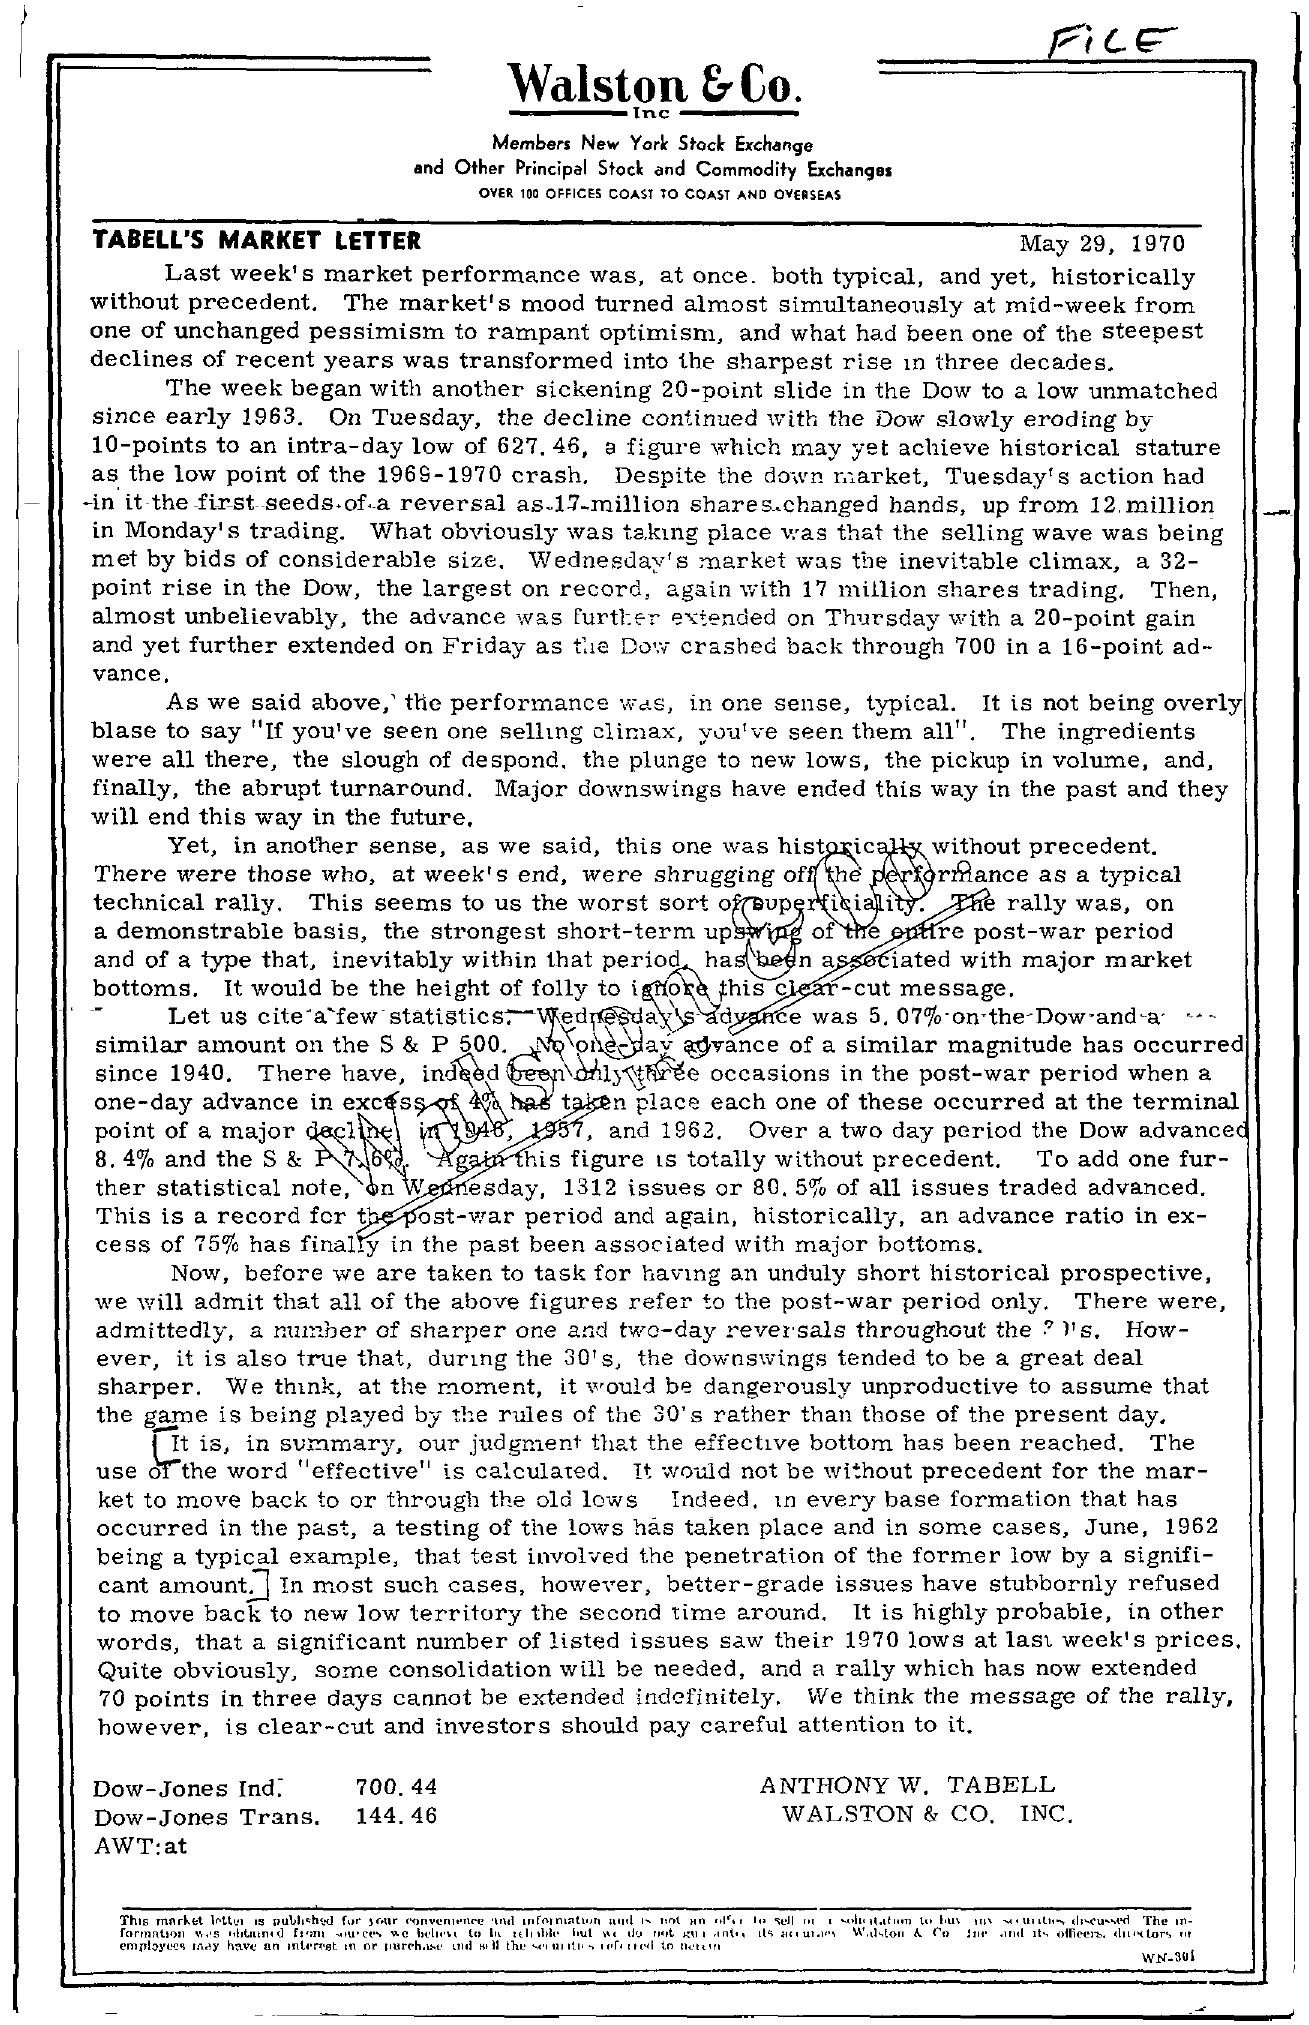 Tabell's Market Letter - May 29, 1970